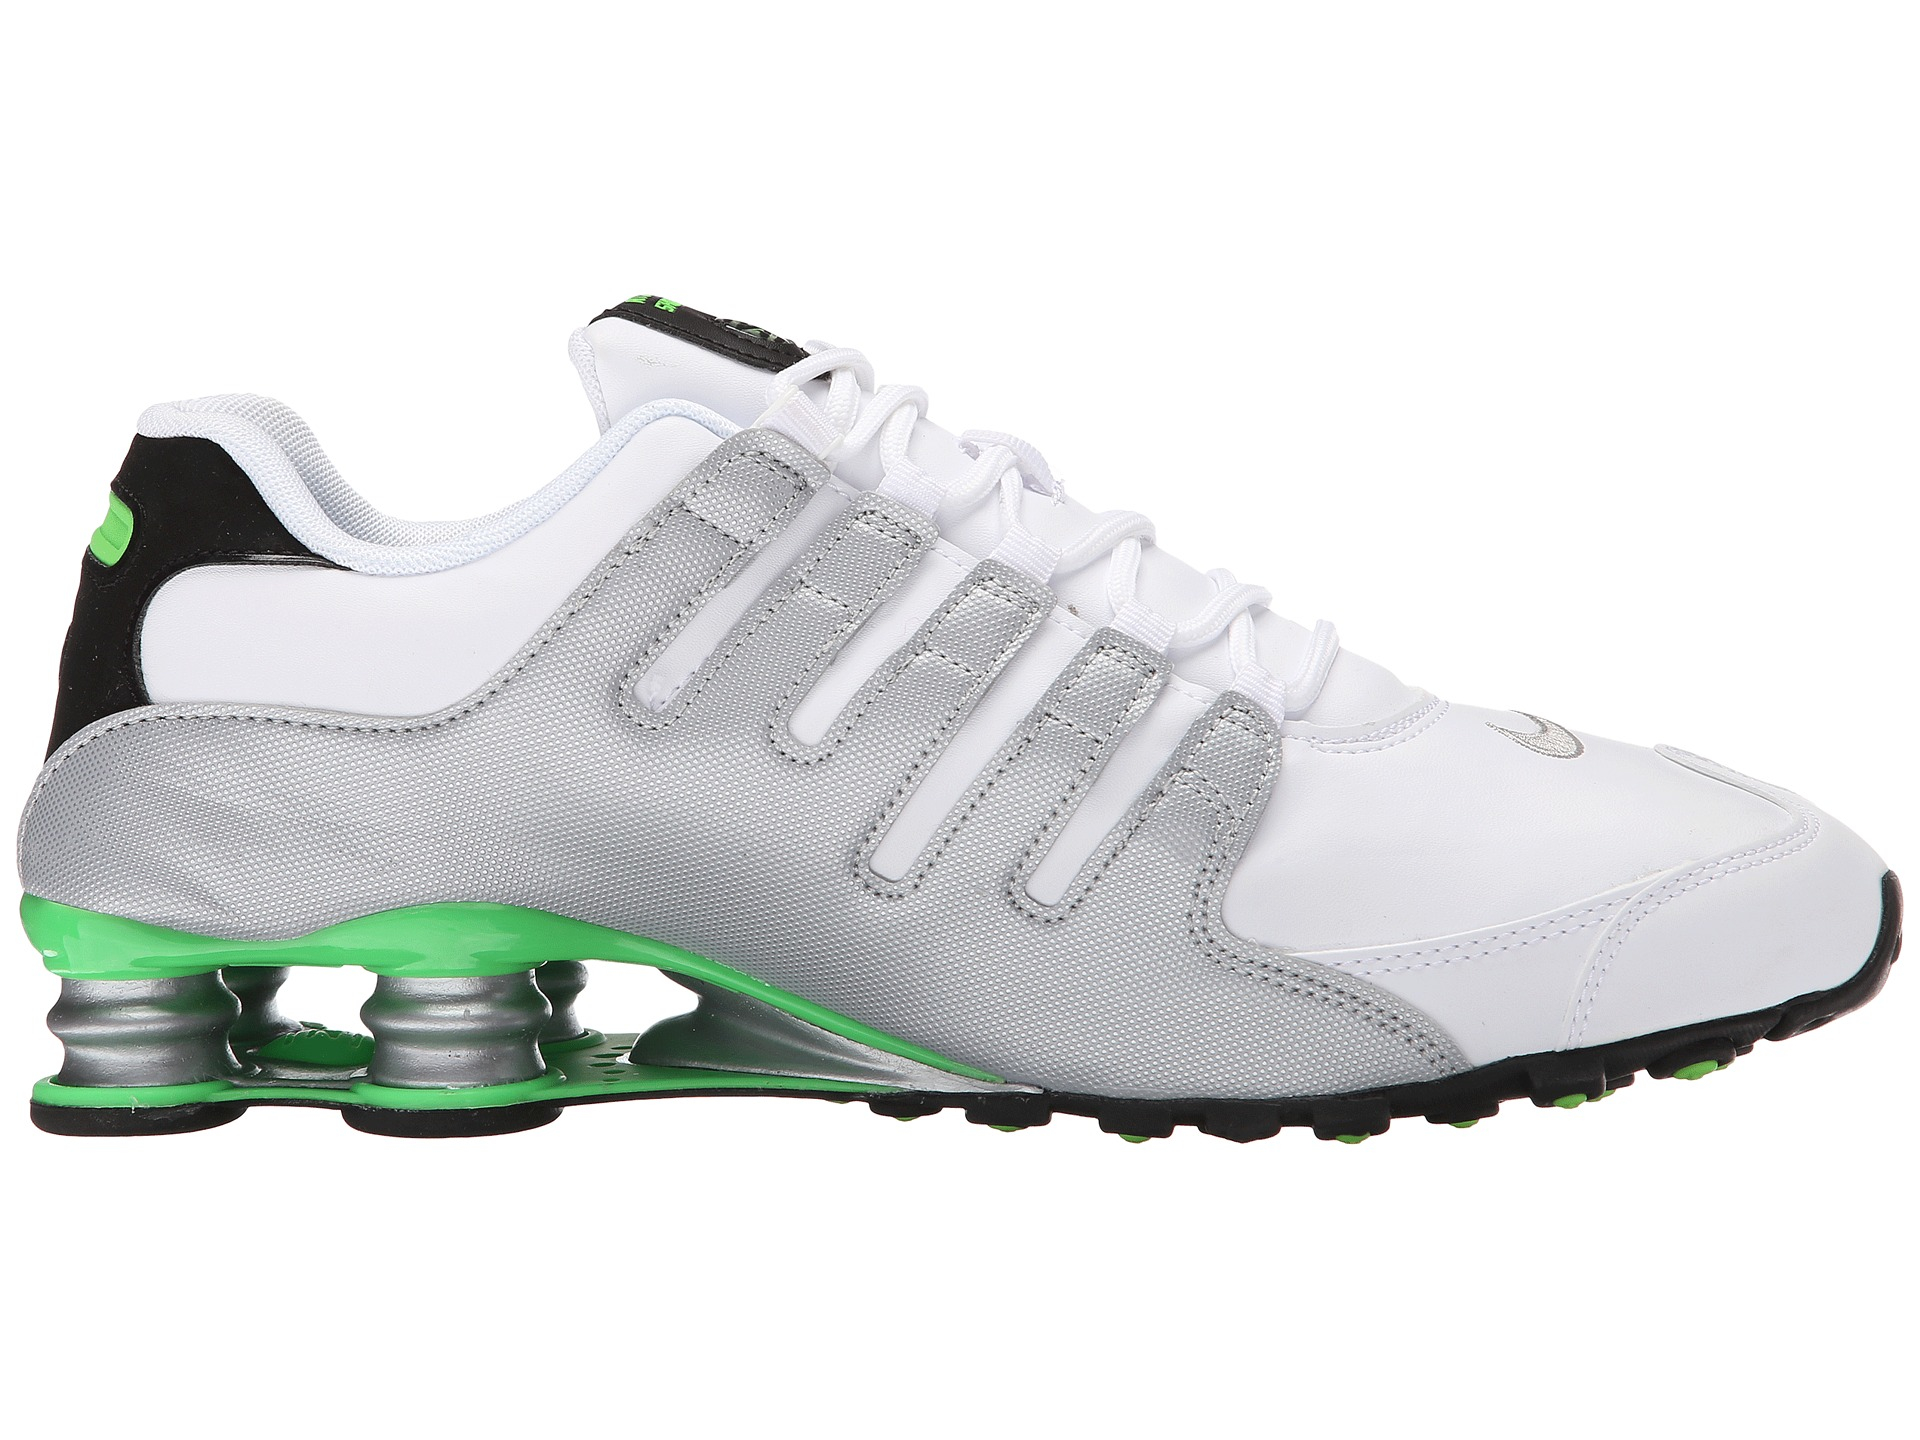 98942ce902e ... uk lyst nike shox nz in white for men 99788 49982